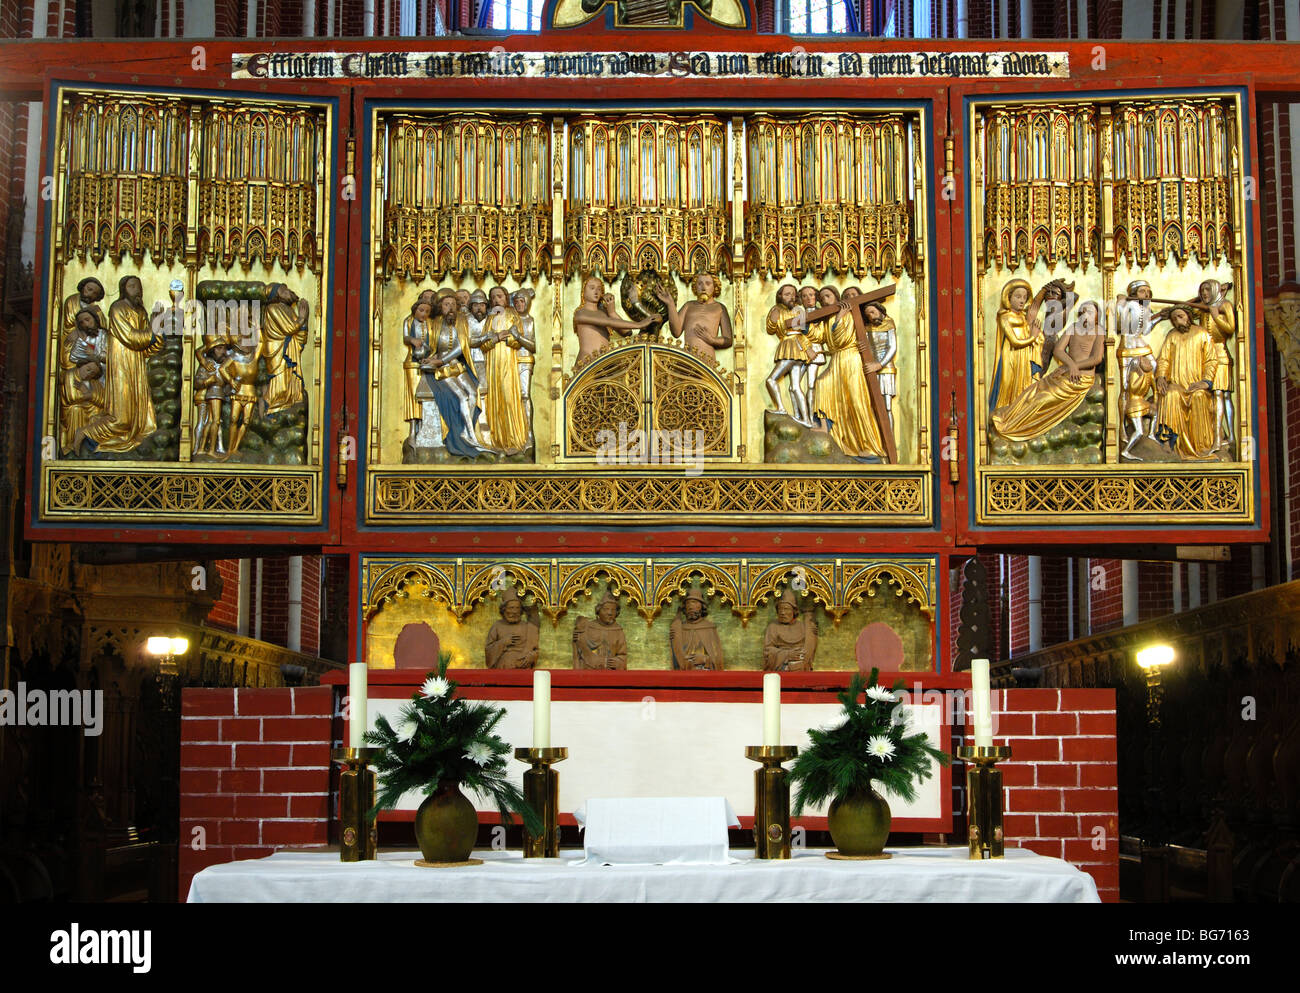 Depictions on the side of Christ of the double sided cross altar, Muenster Bad Doberan, Mecklenburg-Western Pomerania, - Stock Image